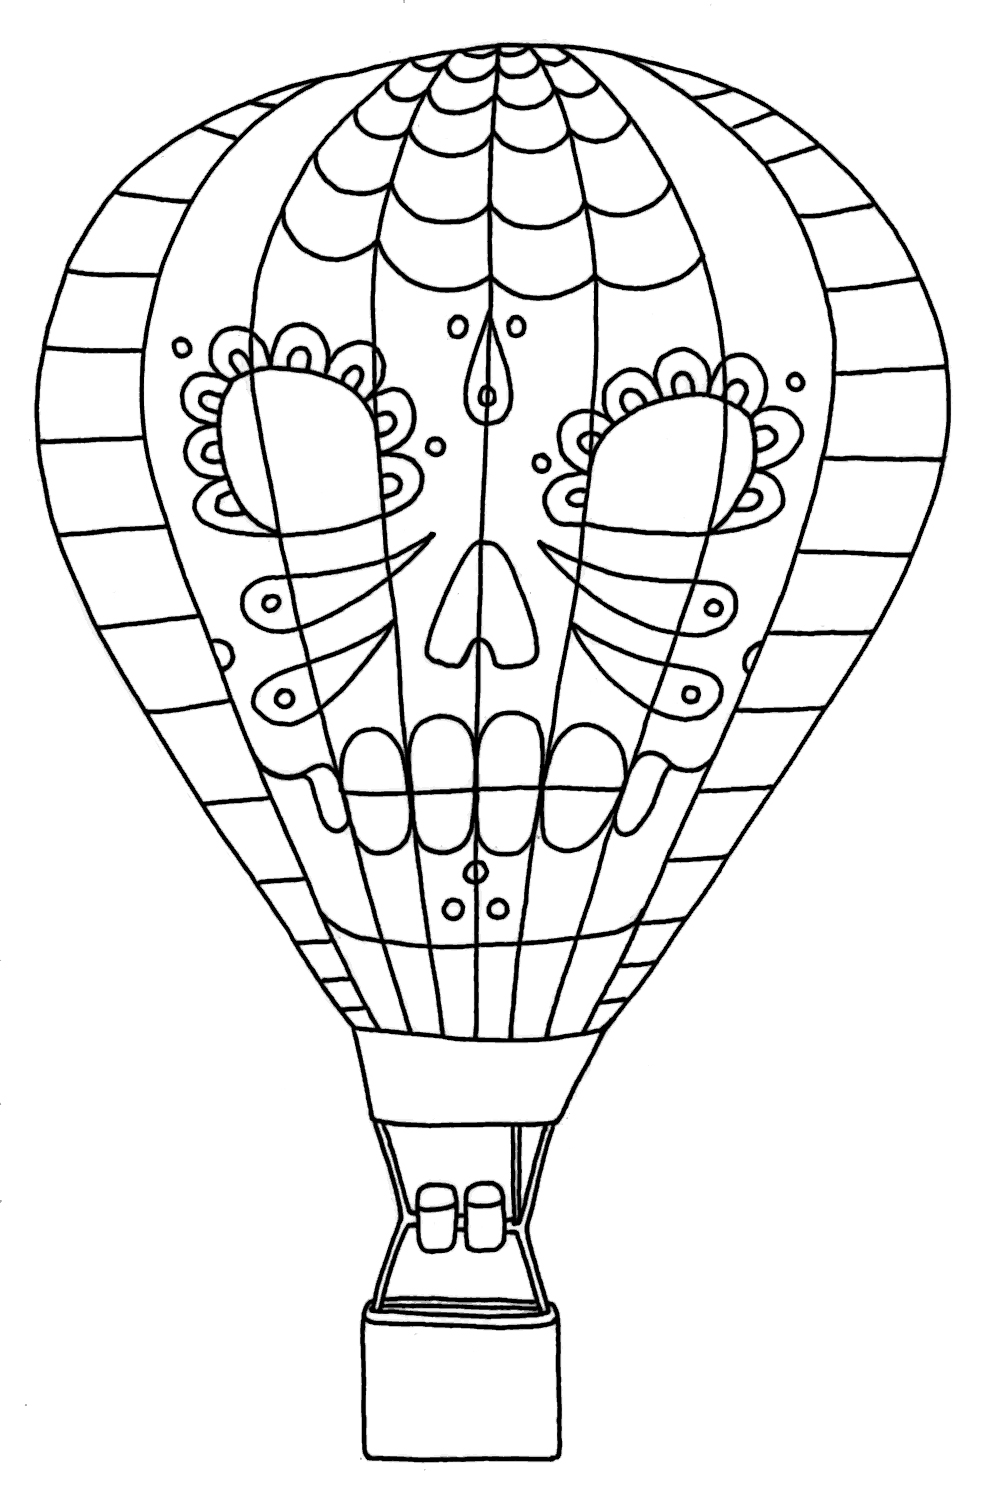 coloring ballons free printable hot air balloon coloring pages for kids ballons coloring